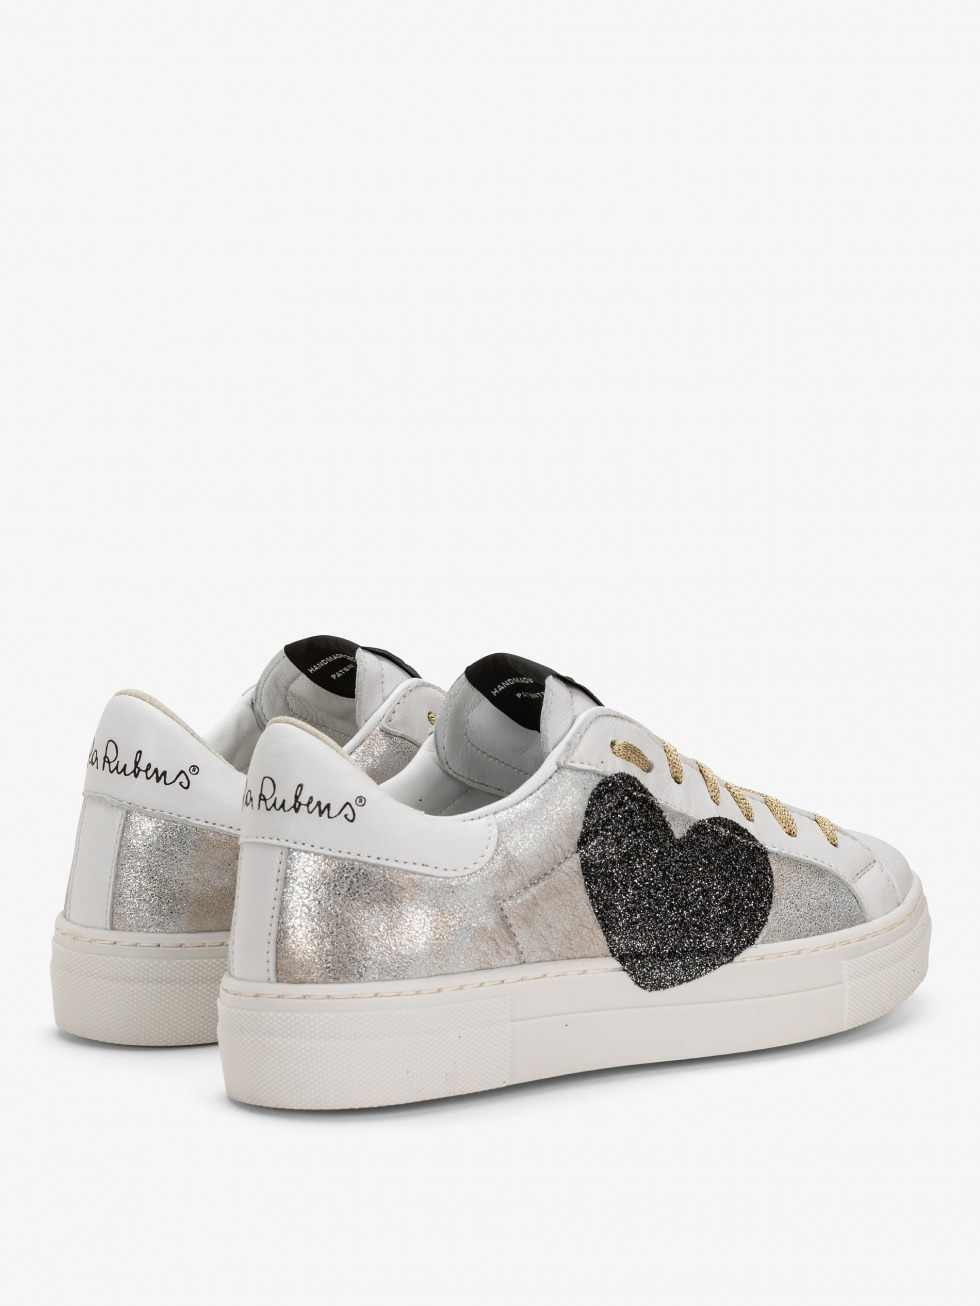 Gold Vintage Martini Sneakers - Heart